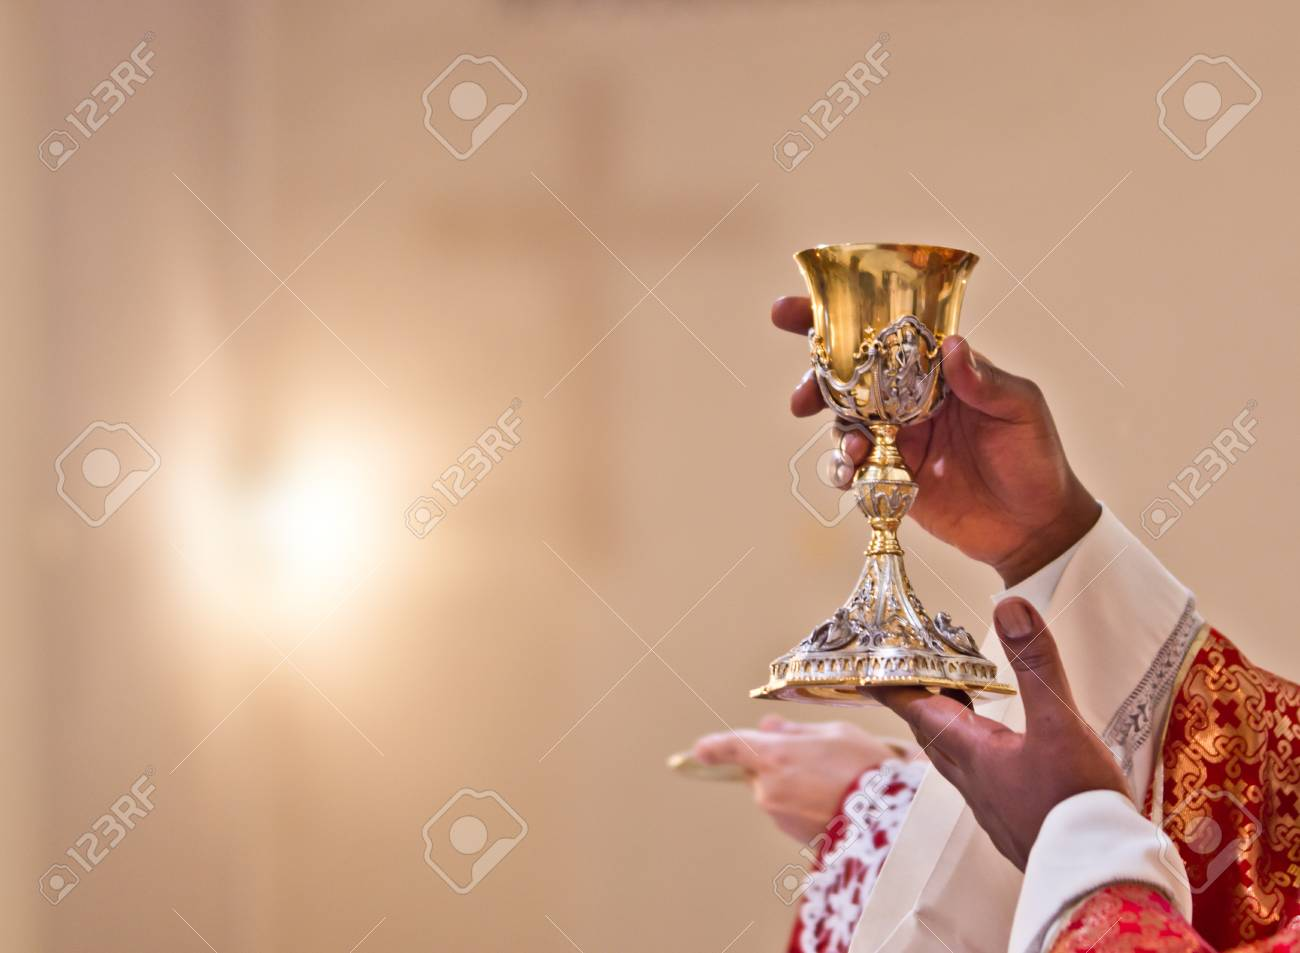 hands of the priest raise the cup containing the blood of Christ, the sacred grail - 97952379